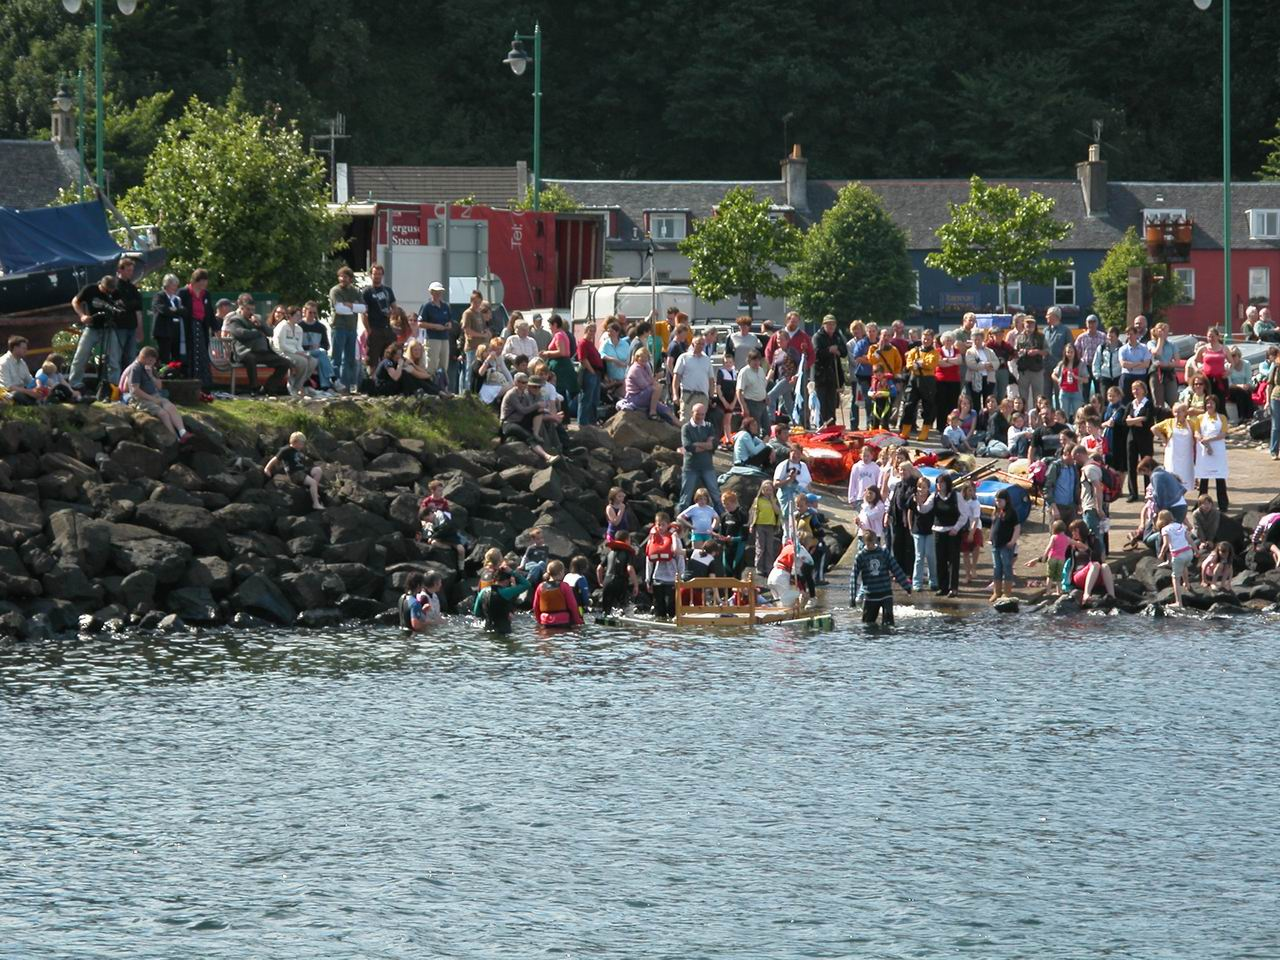 fun_event_at_tobermory